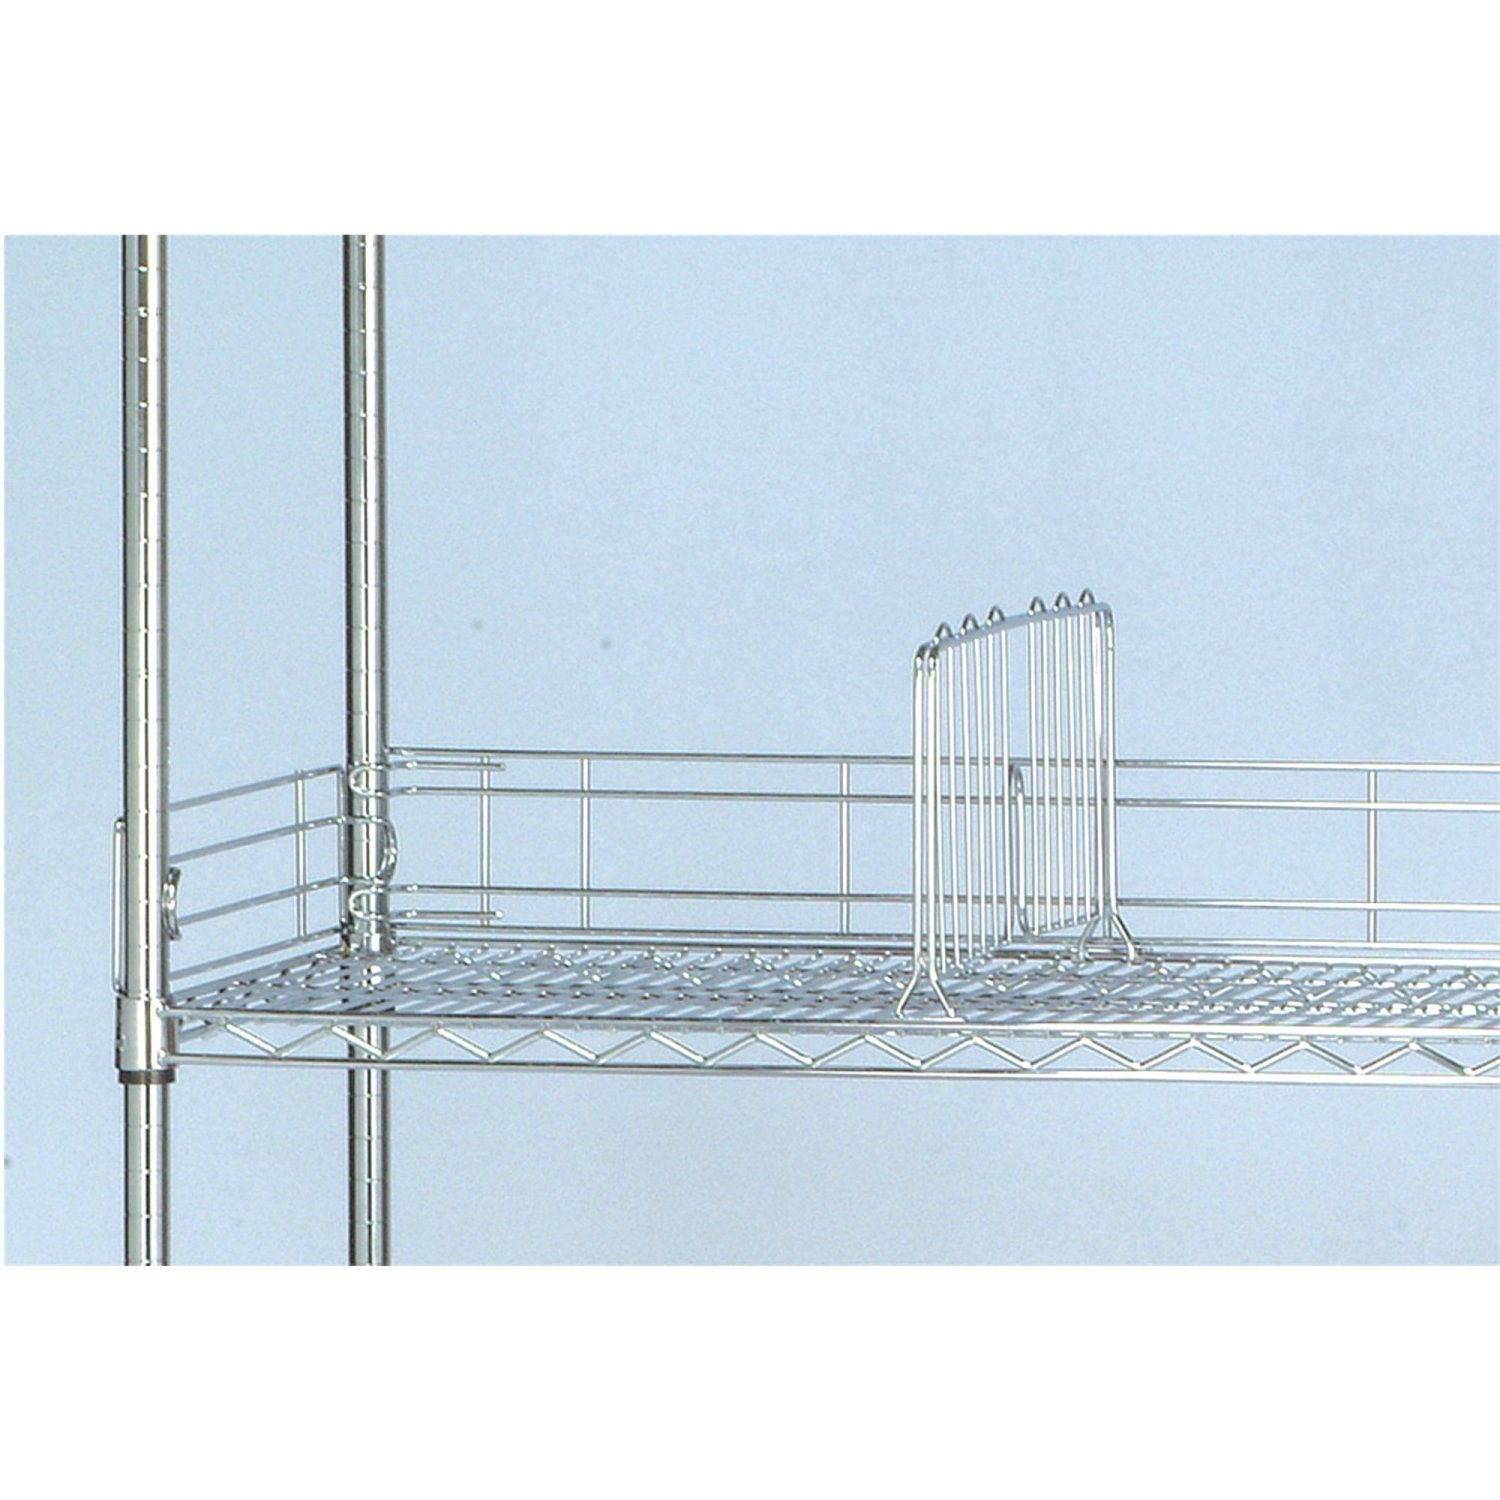 Cheap Stand Alone Shelving Units, find Stand Alone Shelving Units ...